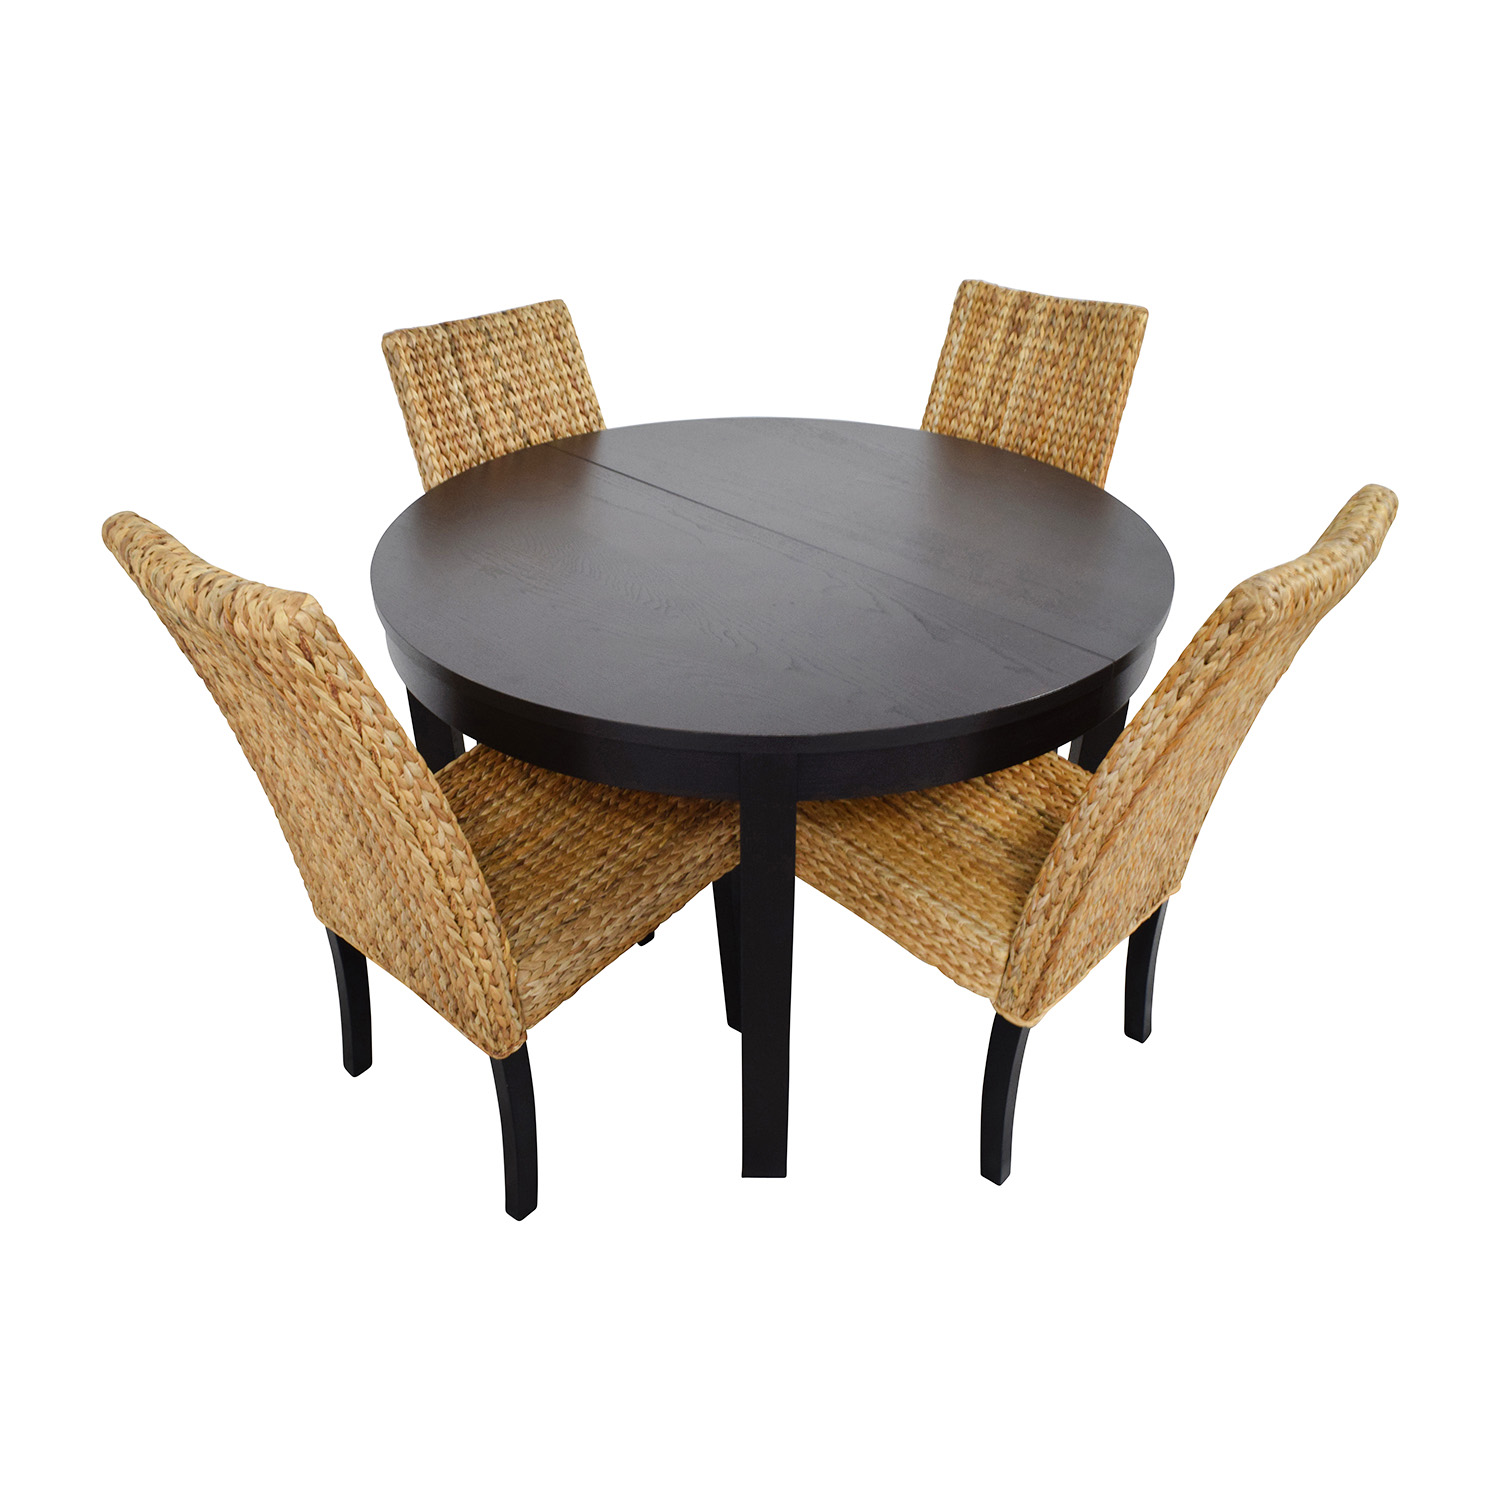 66 off macy 39 s ikea round black dining table set with for Buy round table